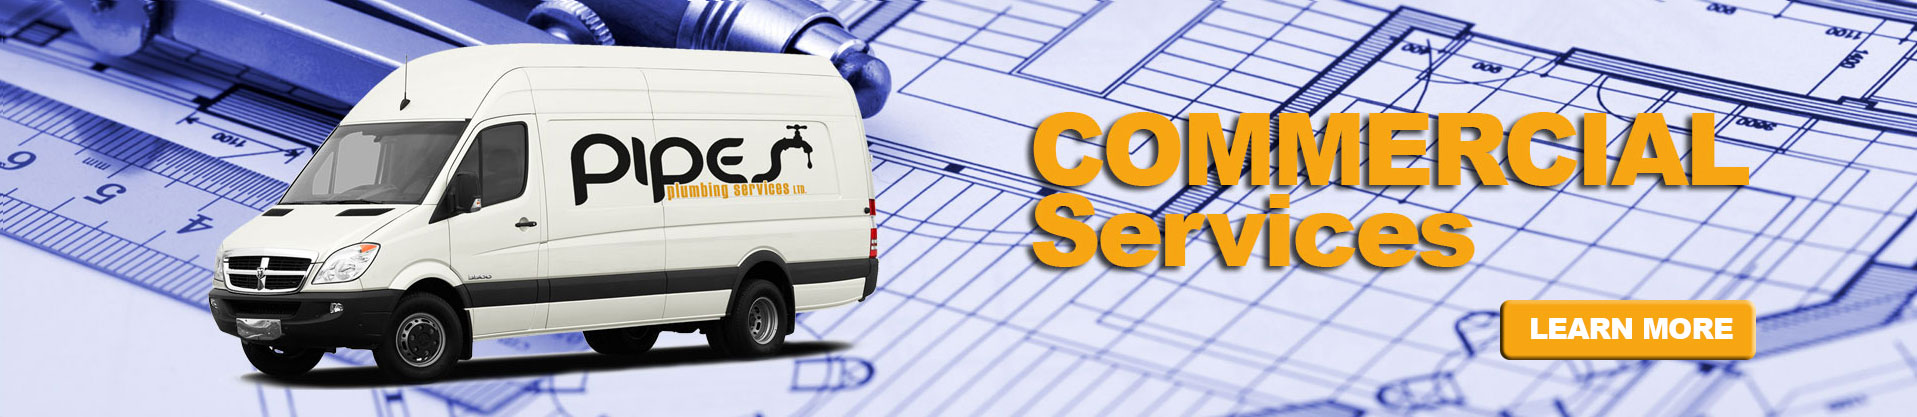 pipes plumbing services